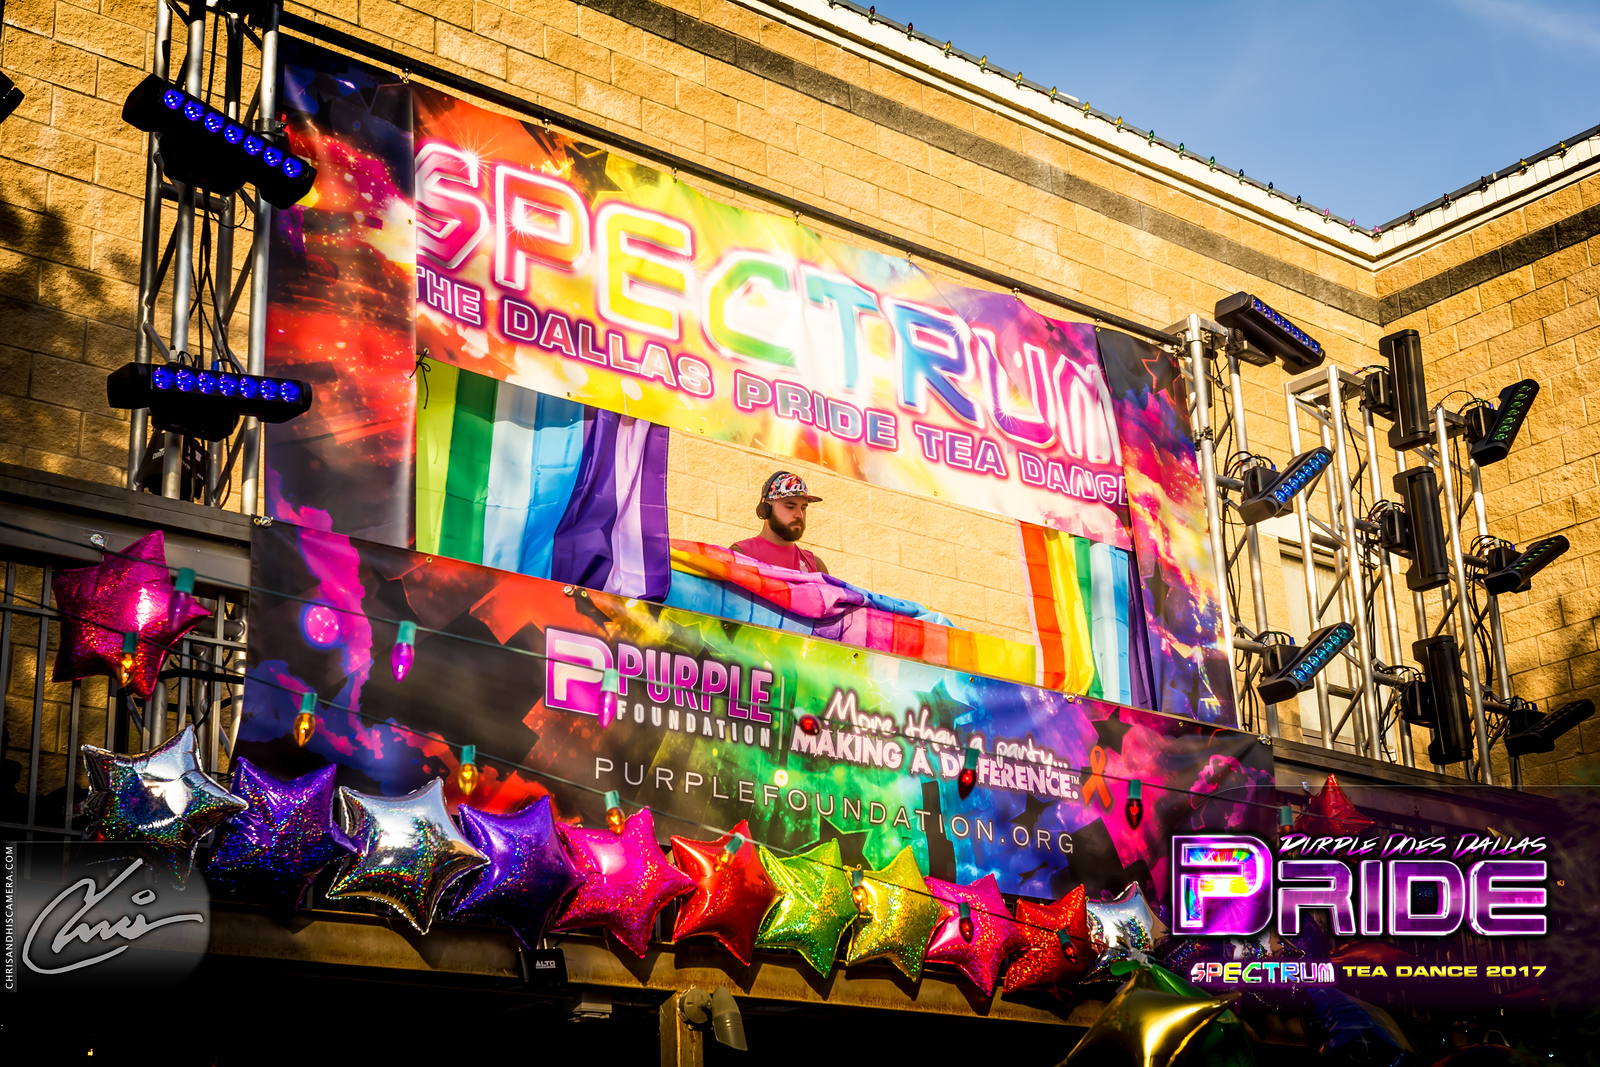 SPECTRUM | The Dallas Pride Tea Dance 2017